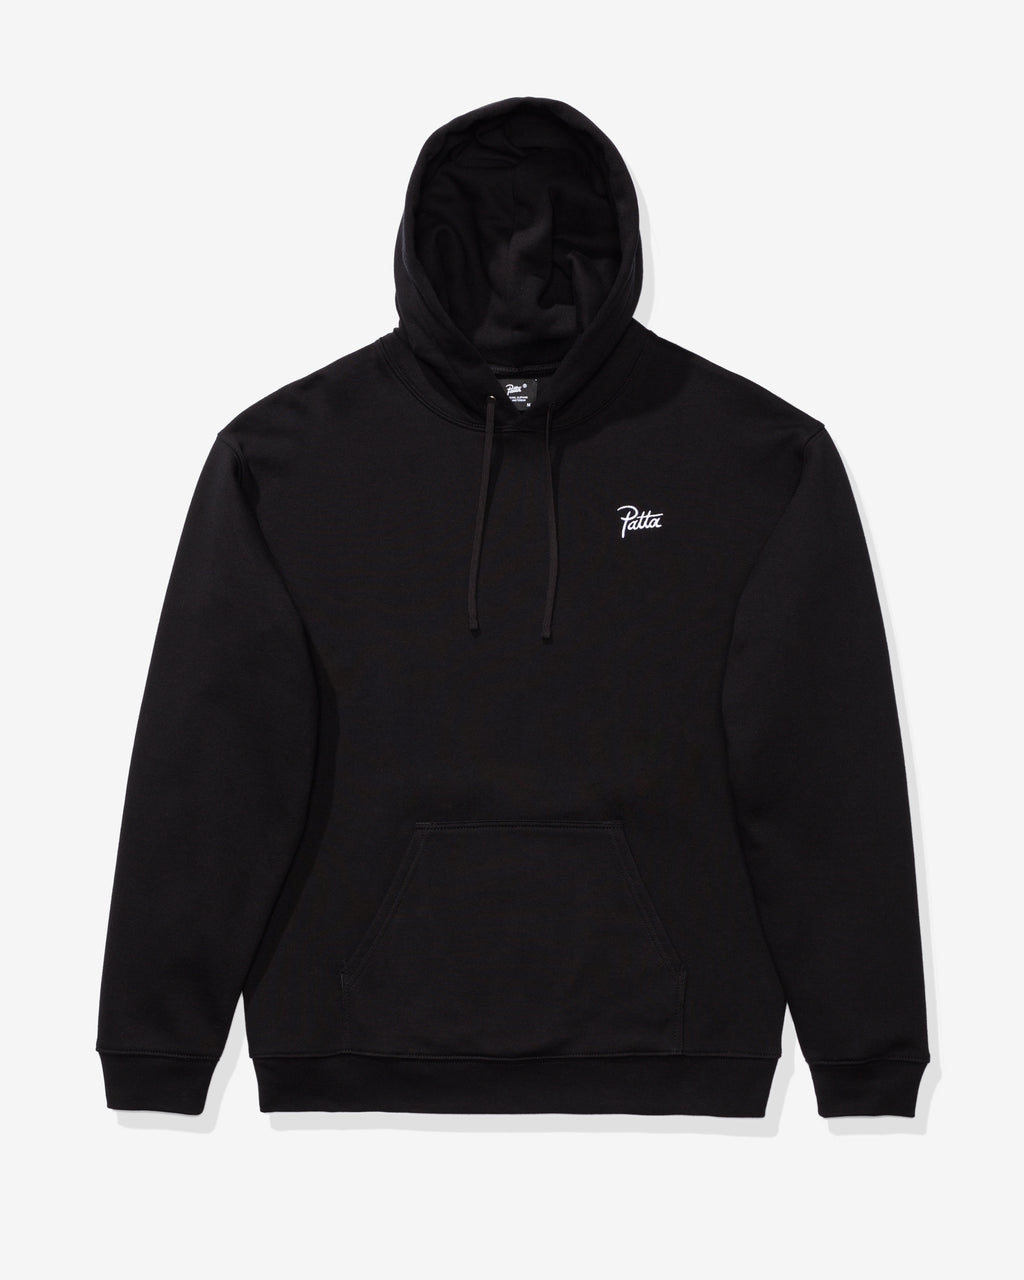 PATTA PAINTED SKULL ZIP HOODED SWEATER - BLACK